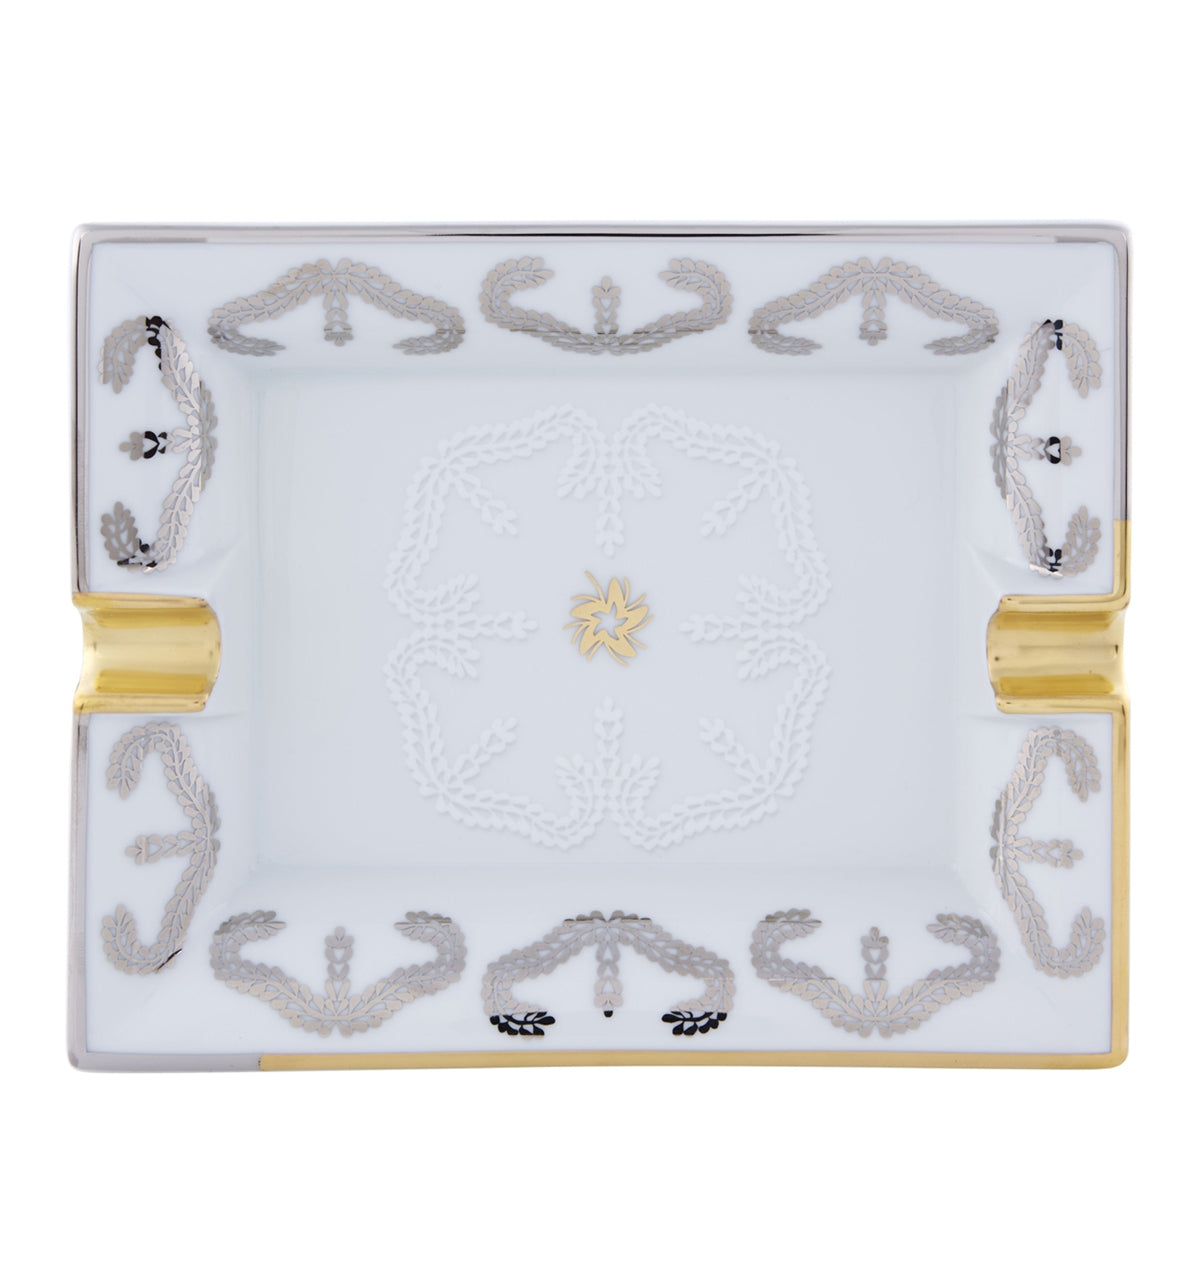 Ashtray - Paseo - Dinnerware - Vista Alegre